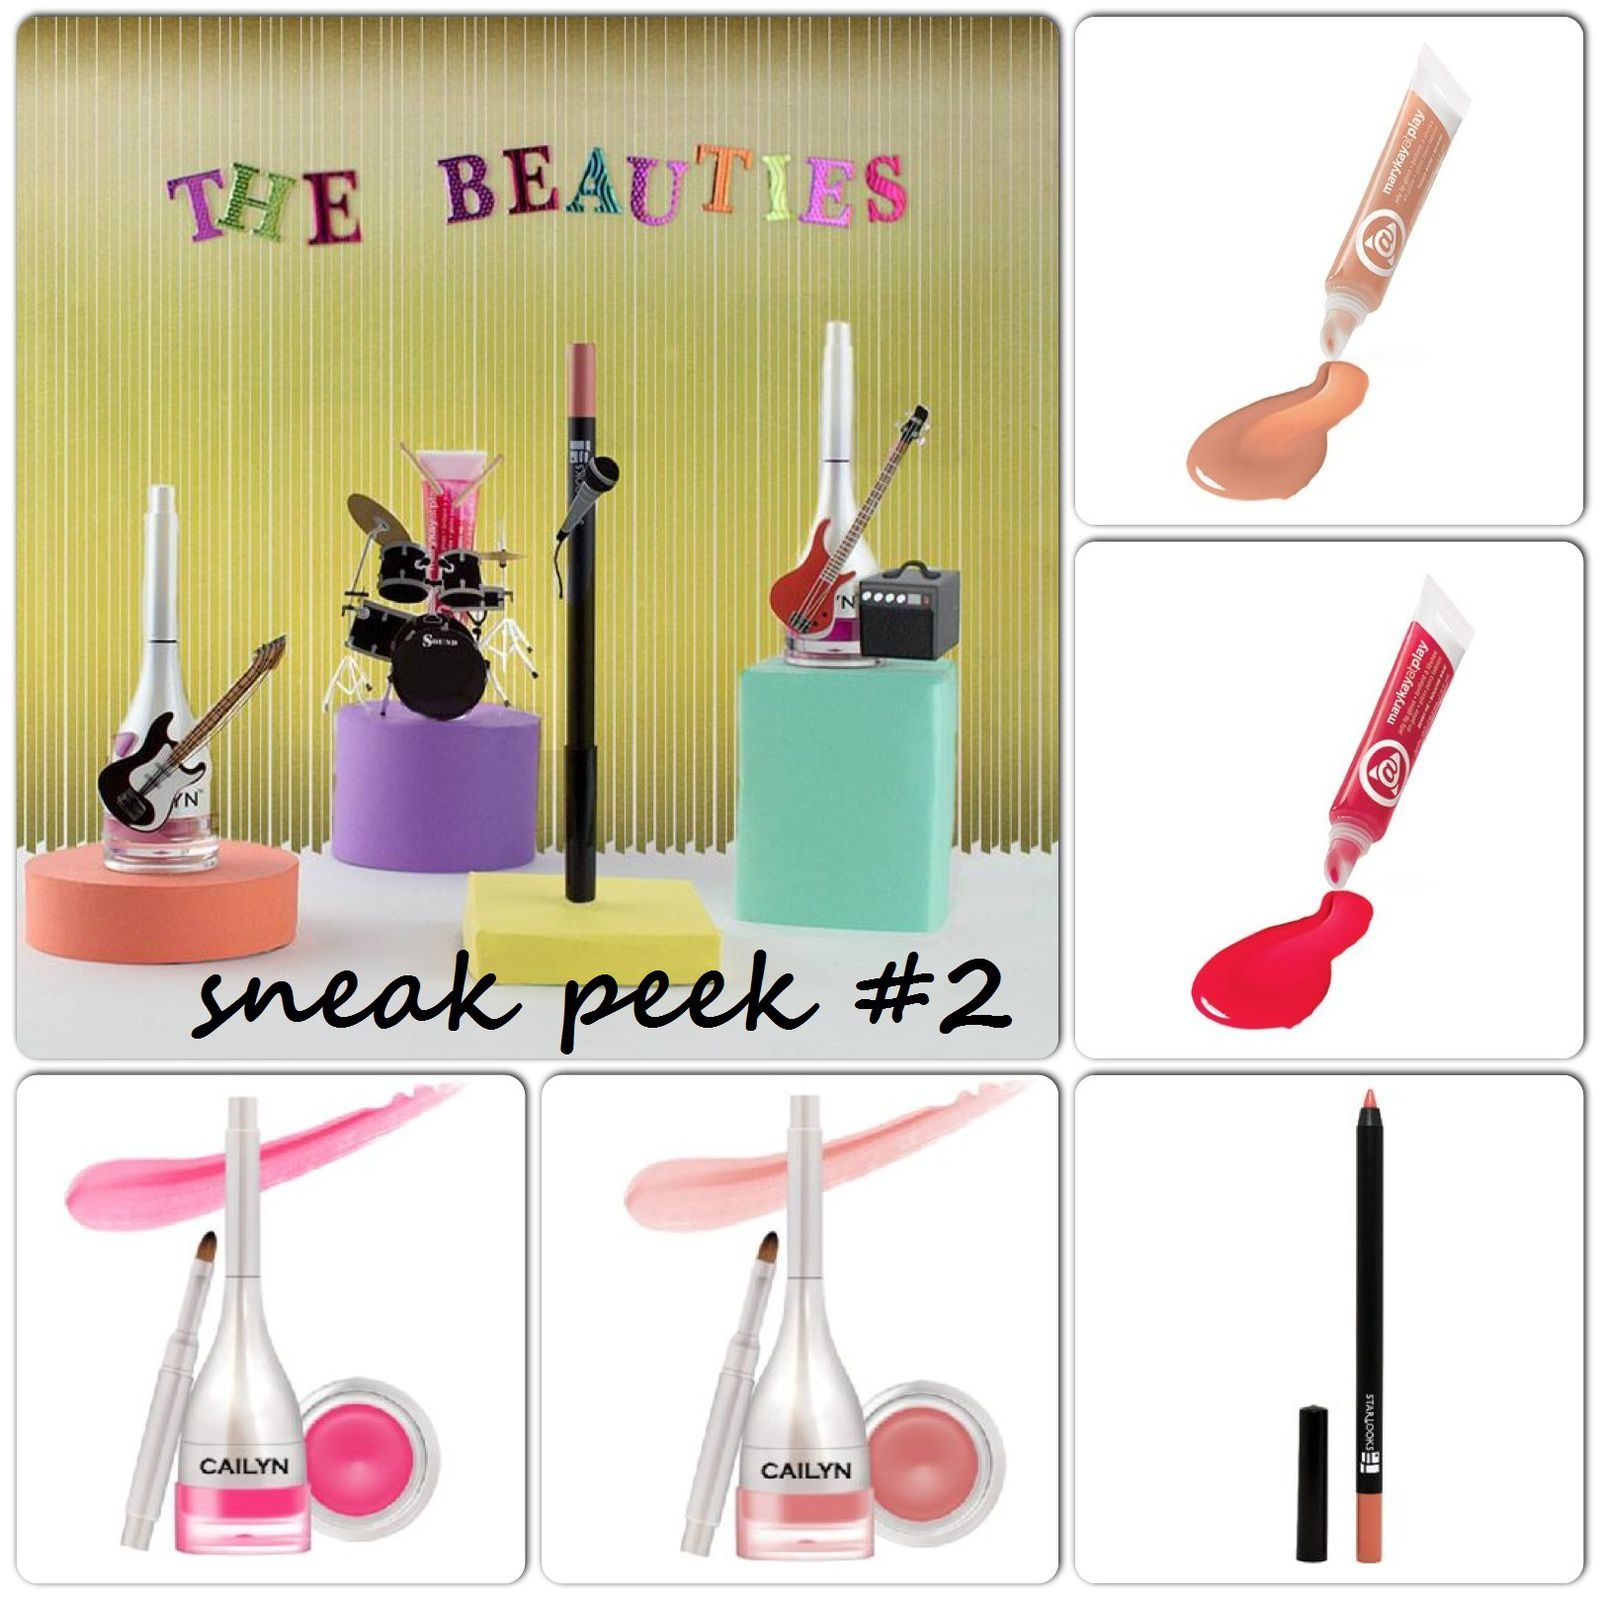 Sneak Peek #2 - Mary Kay At Play™ Jelly Lip Gloss (Teddy Bare or Berry Me), Starlooks Luscious Longwear Lip Pencil (Naked) & Cailyn Tinted Lip Balm (Apple Pink or Acid Pink)